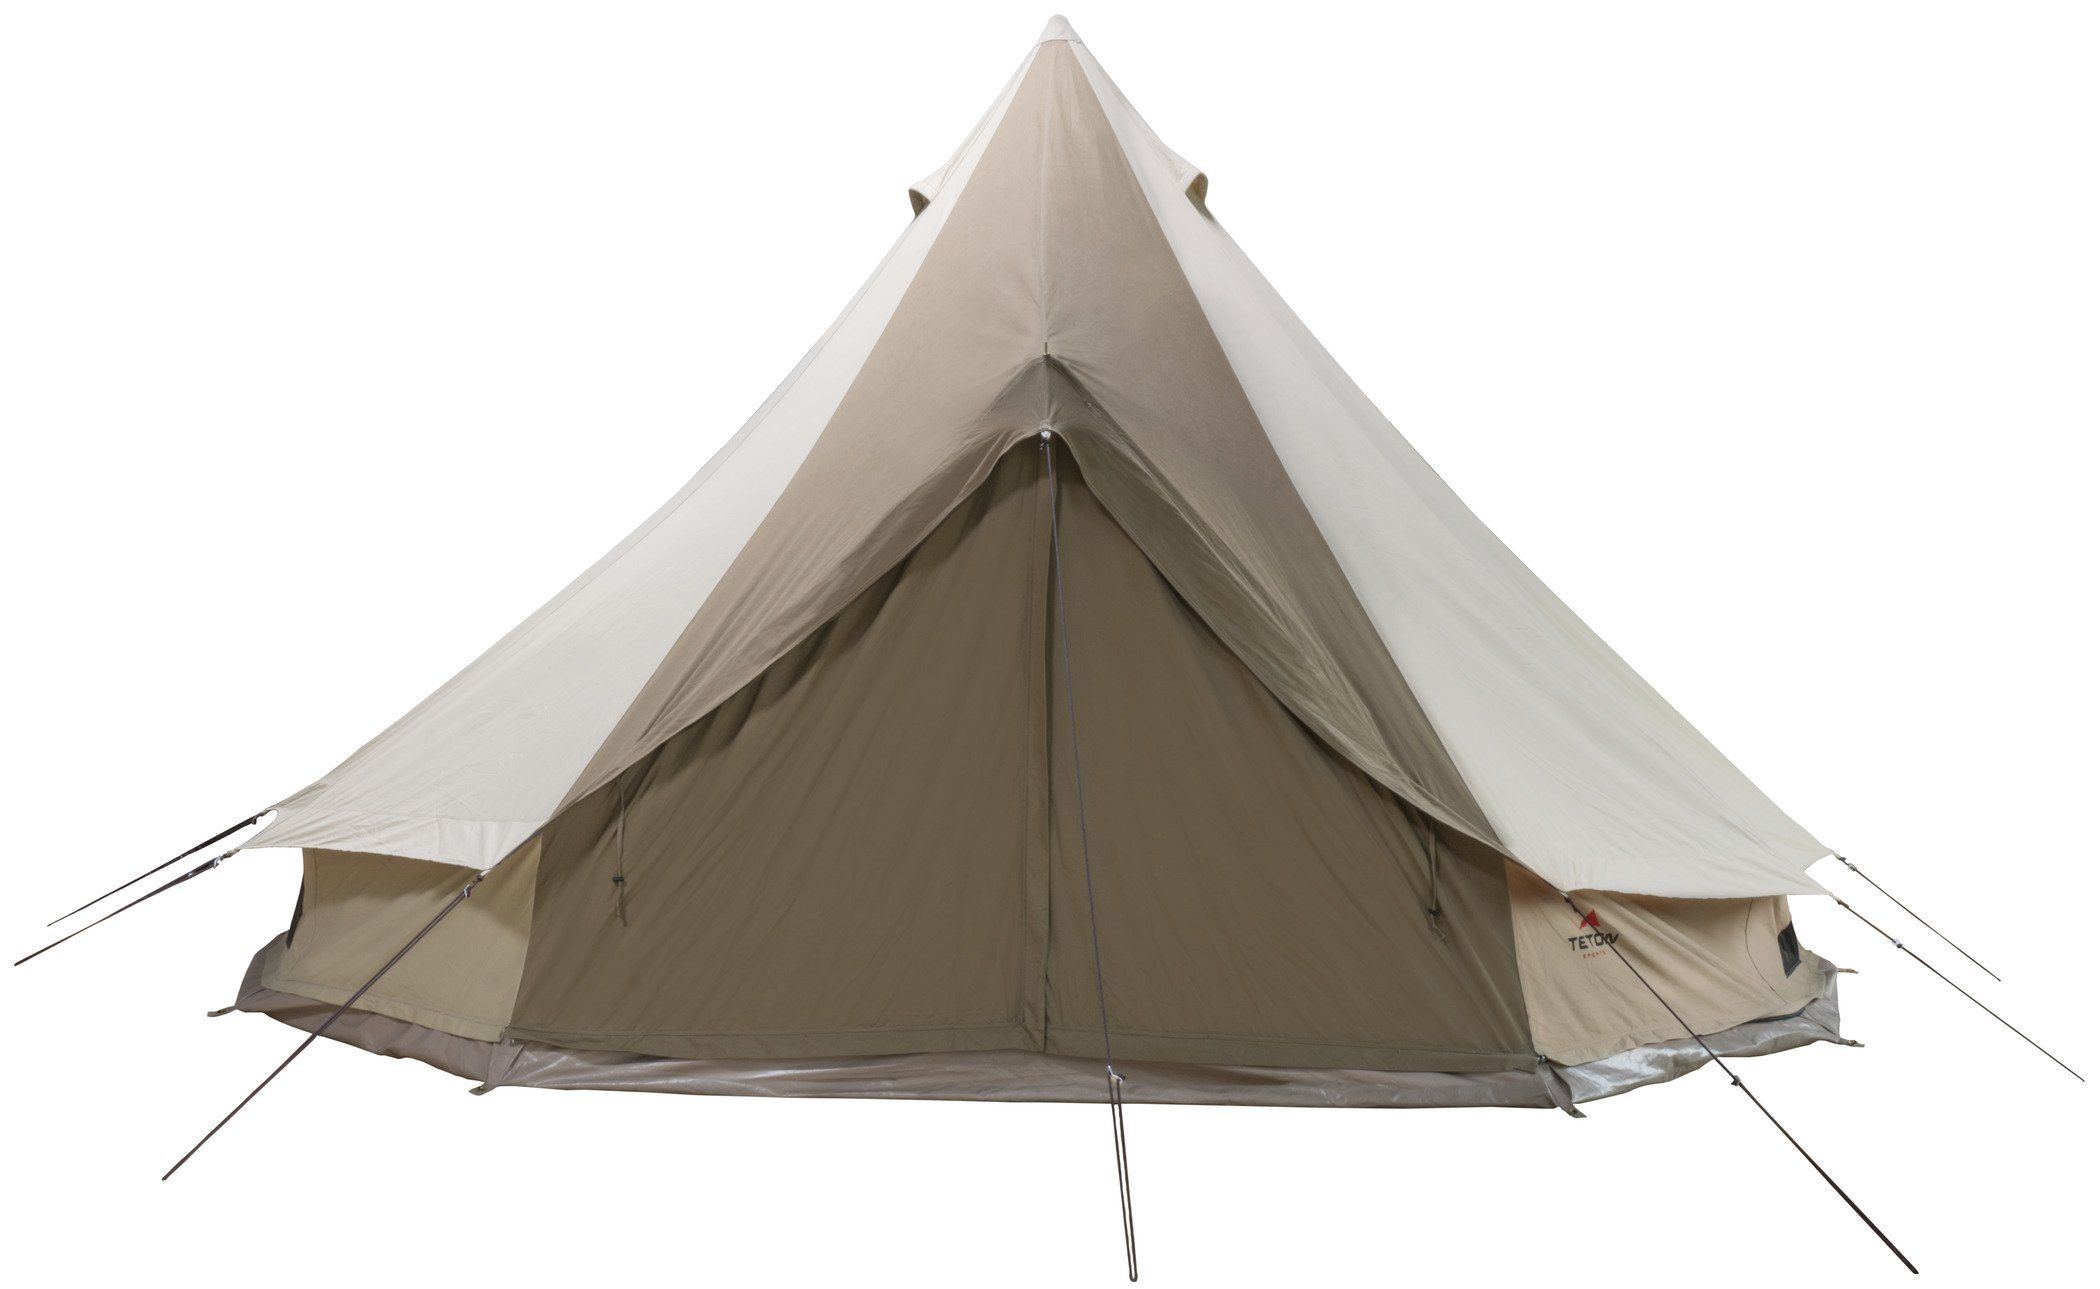 TETON Sports Sierra 12 Canvas Tent; Waterproof Bell Tent for Family Camping in All Seasons; 6-10 Person Tent, 12' x 12', Brown/Tan by TETON Sports